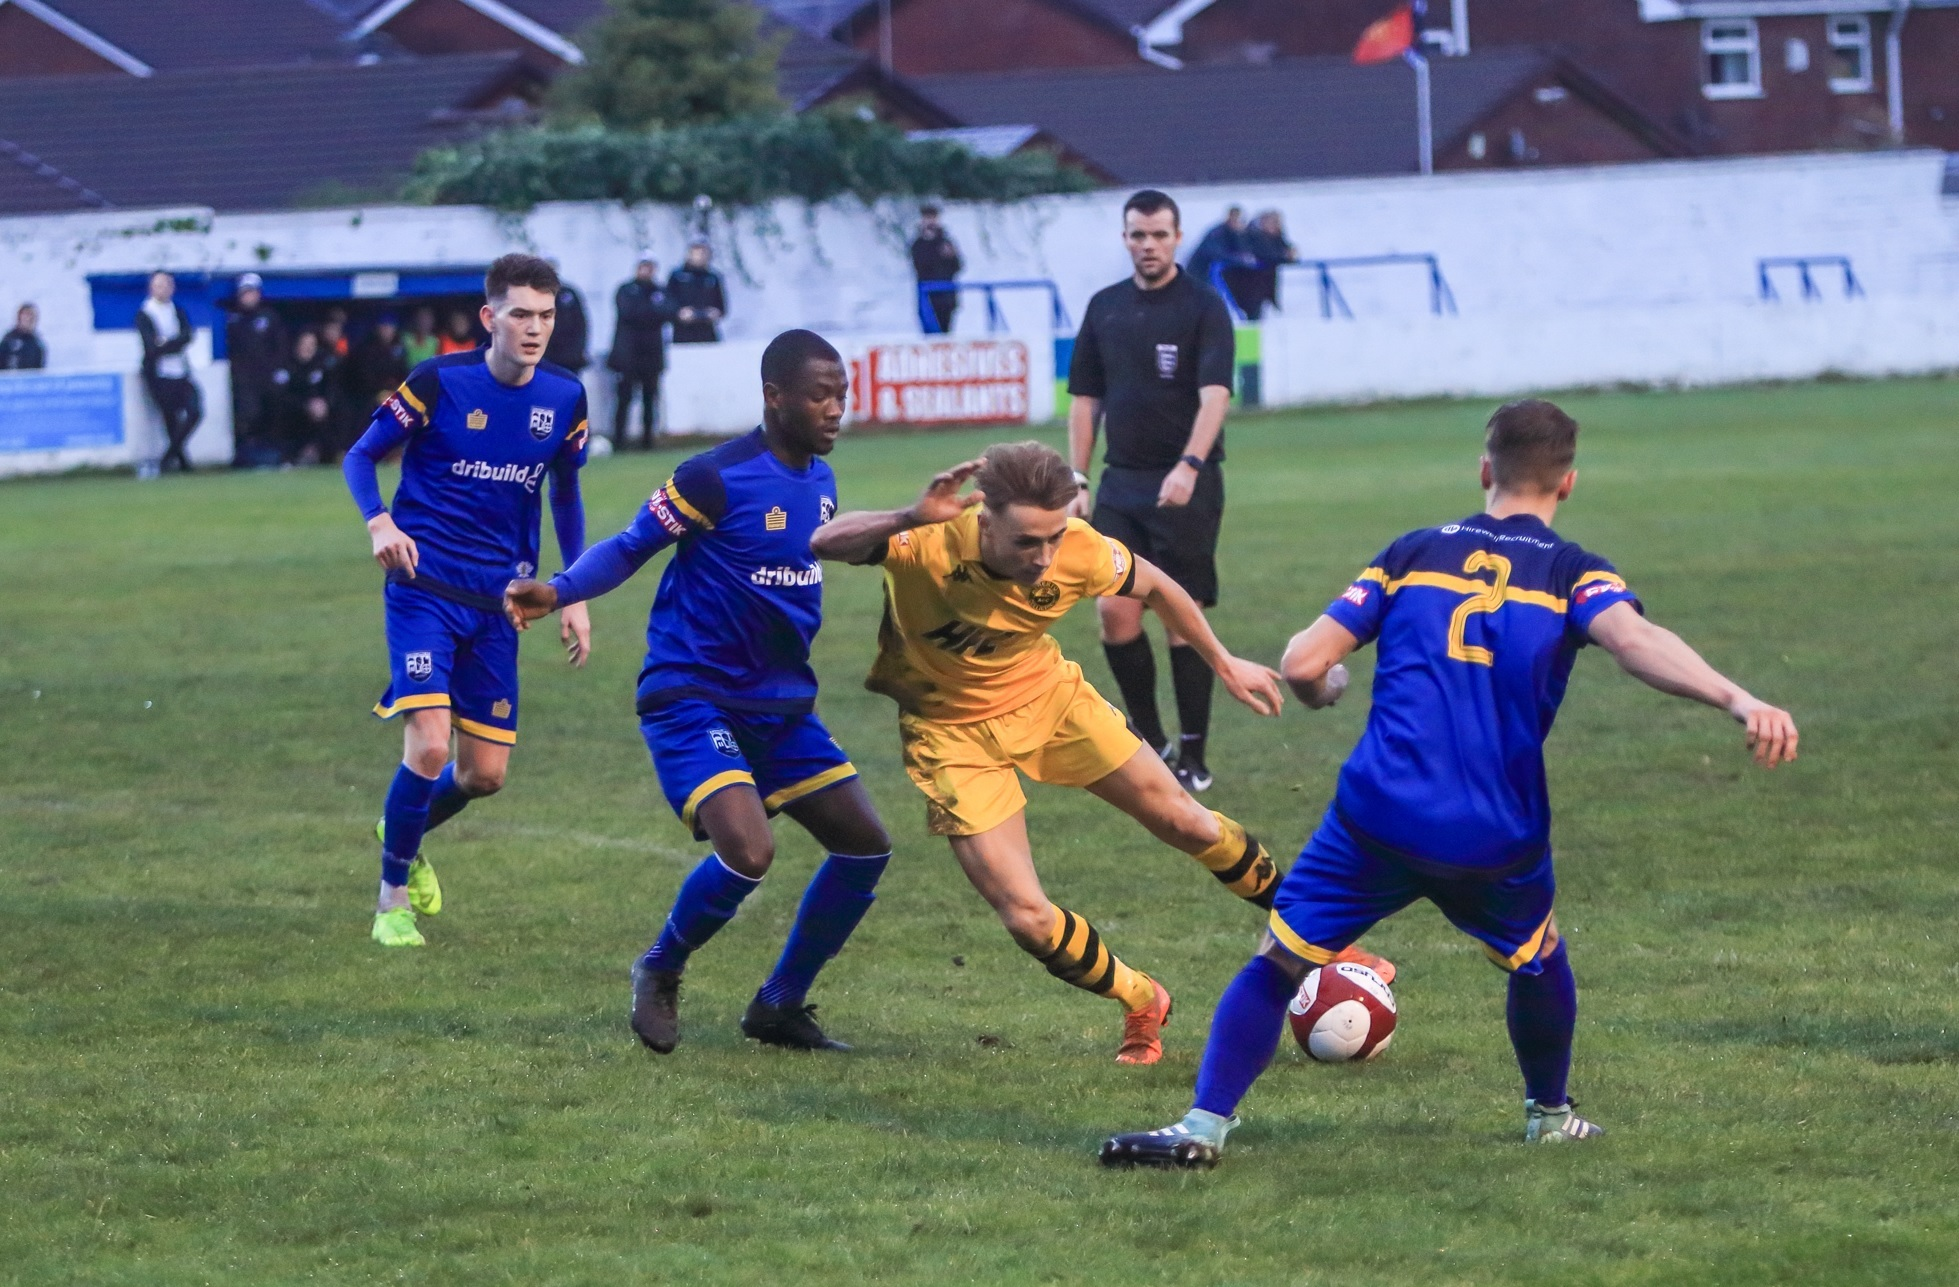 Atherton Colls in action/ Picture: David Featherstone